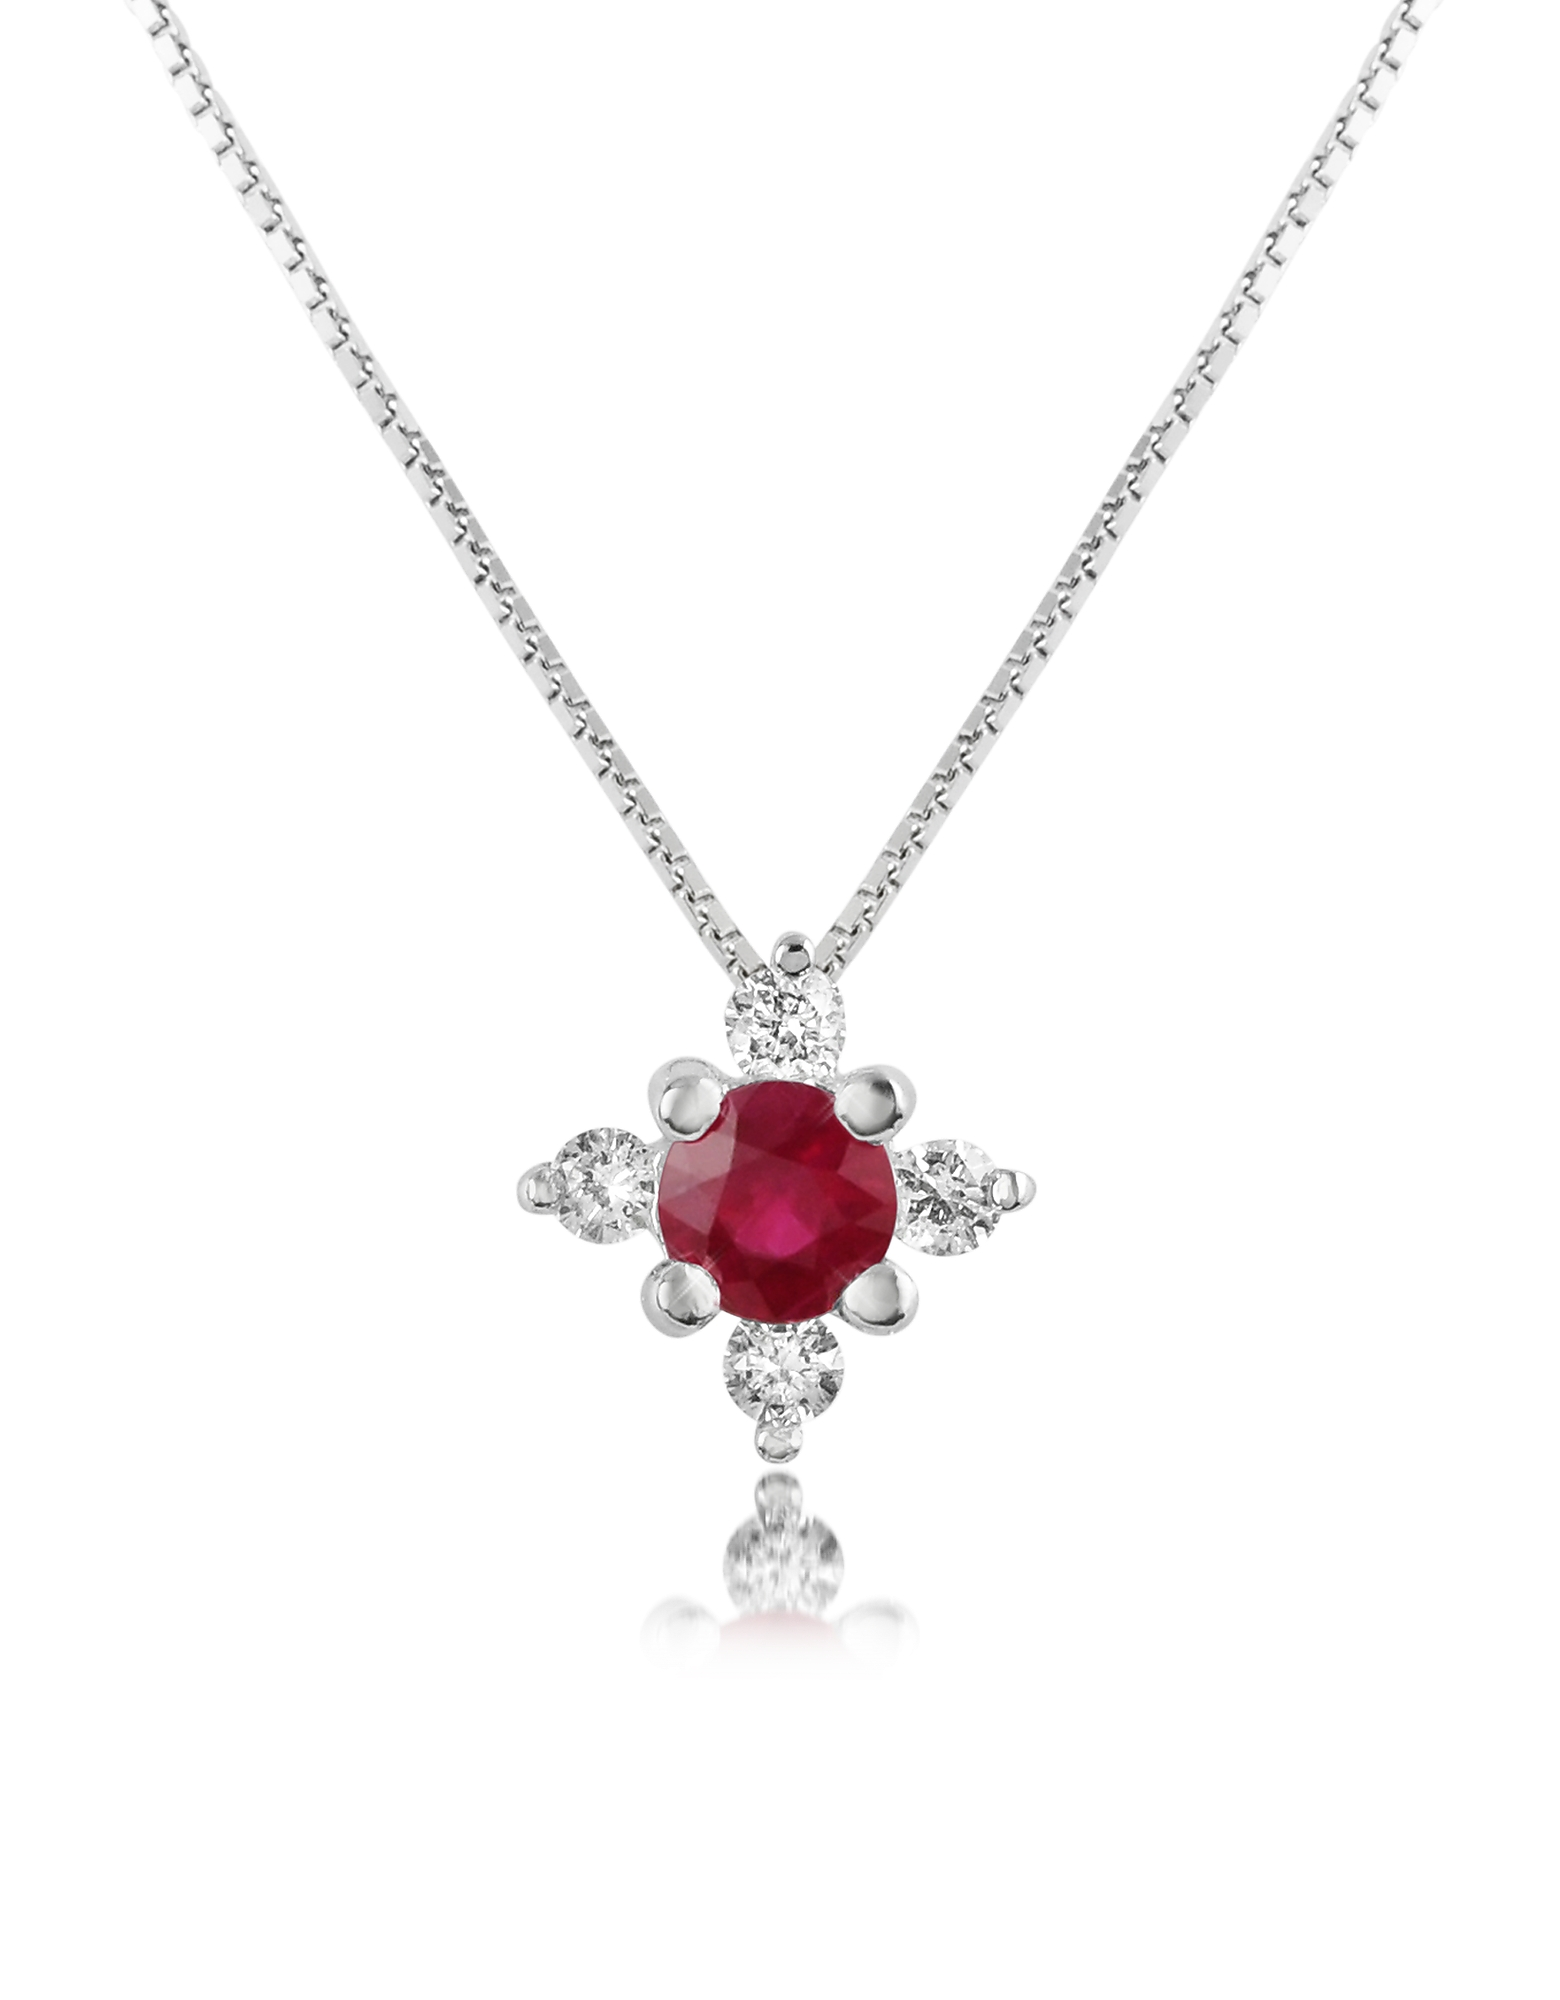 Incanto Royale Necklaces, Diamond and Ruby Flower 18K Gold Pendant Necklace